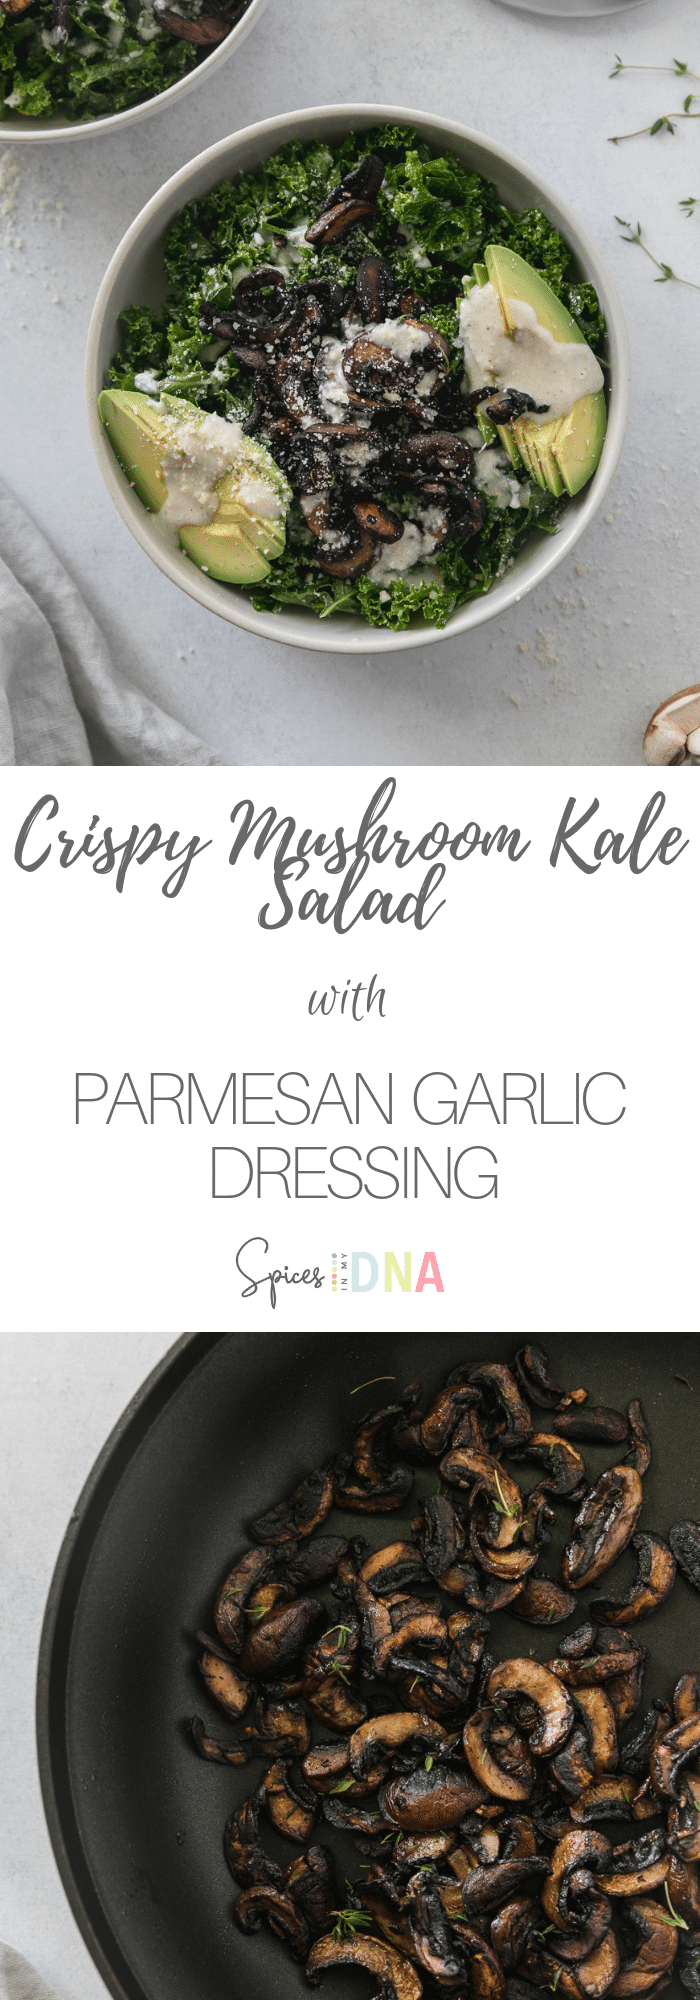 This Crispy Mushroom Kale Salad with Creamy Parmesan Garlic Dressing is a hearty, delicious, plant based salad with tons of texture and flavor. The mushrooms are sautéed until crispy and tossed with fresh thyme, then served over a massaged kale salad with avocado and a creamy, garlicky dressing! #salad #plantbased #healthyrecipes